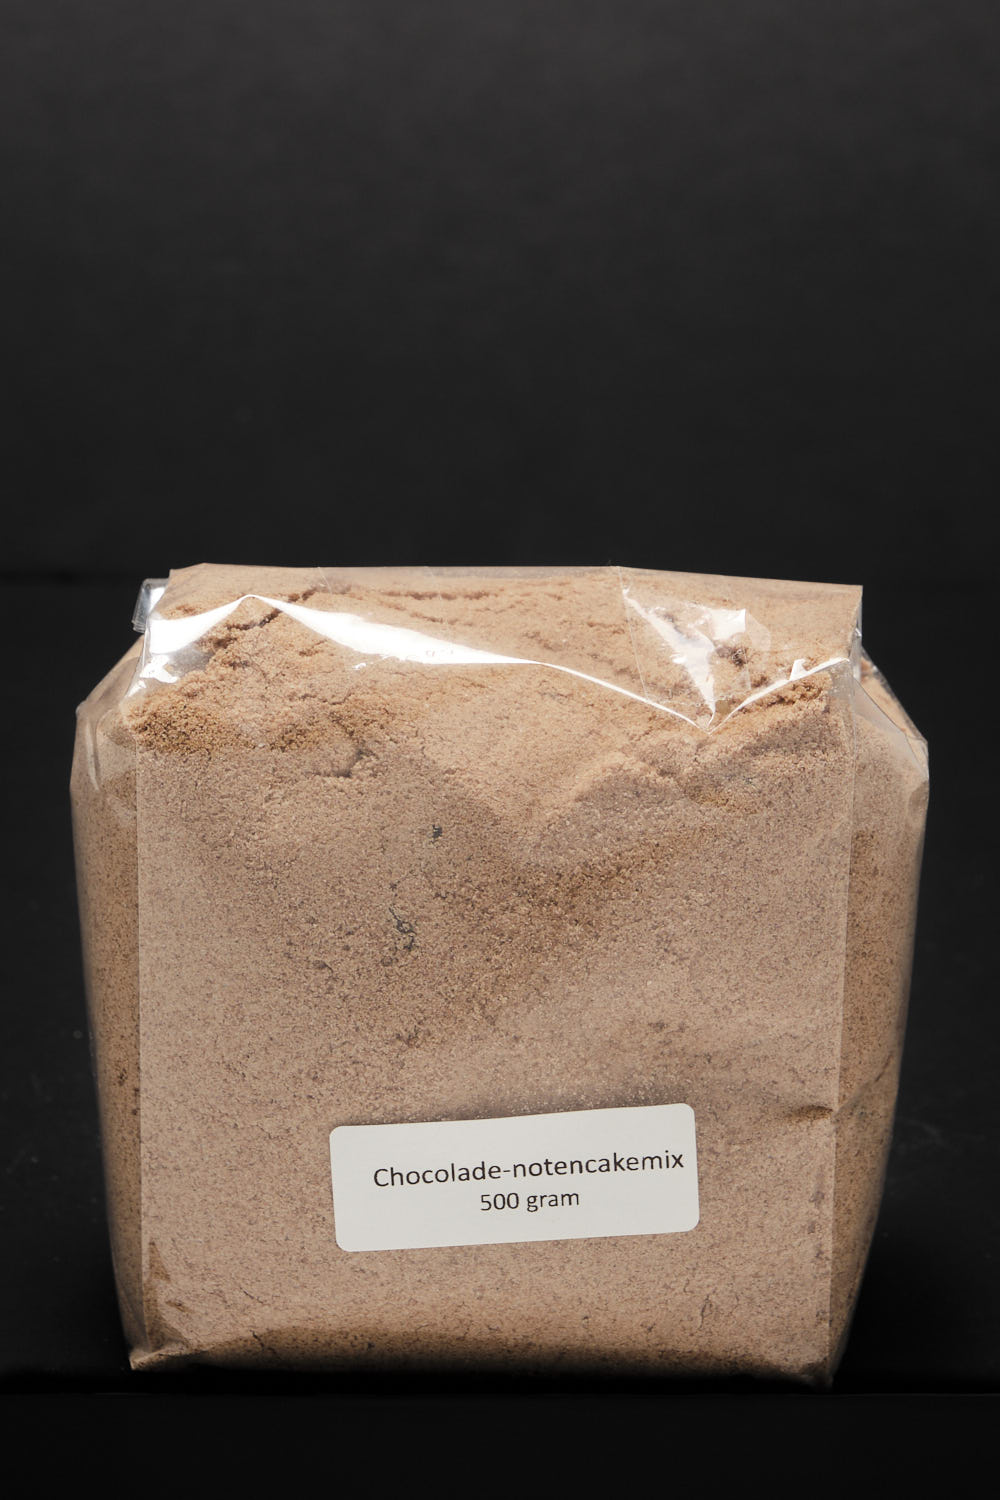 chocolade-noten cakemix